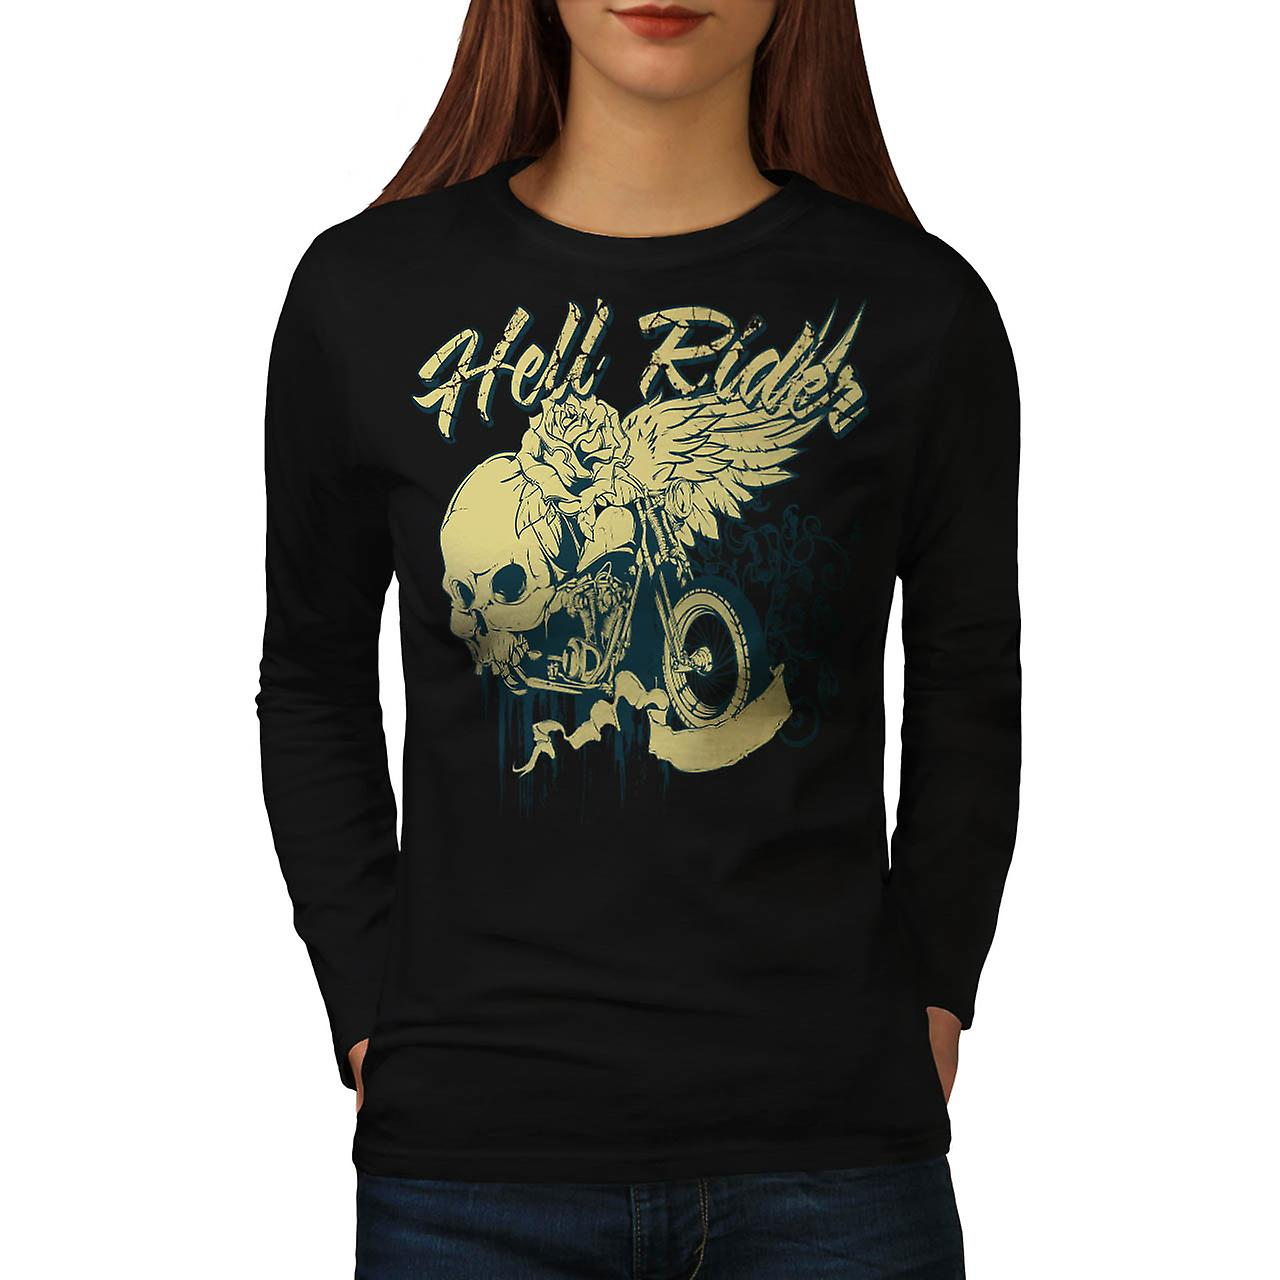 Hell Rider Biker Life Rose Skull Women Black Long Sleeve T-shirt | Wellcoda